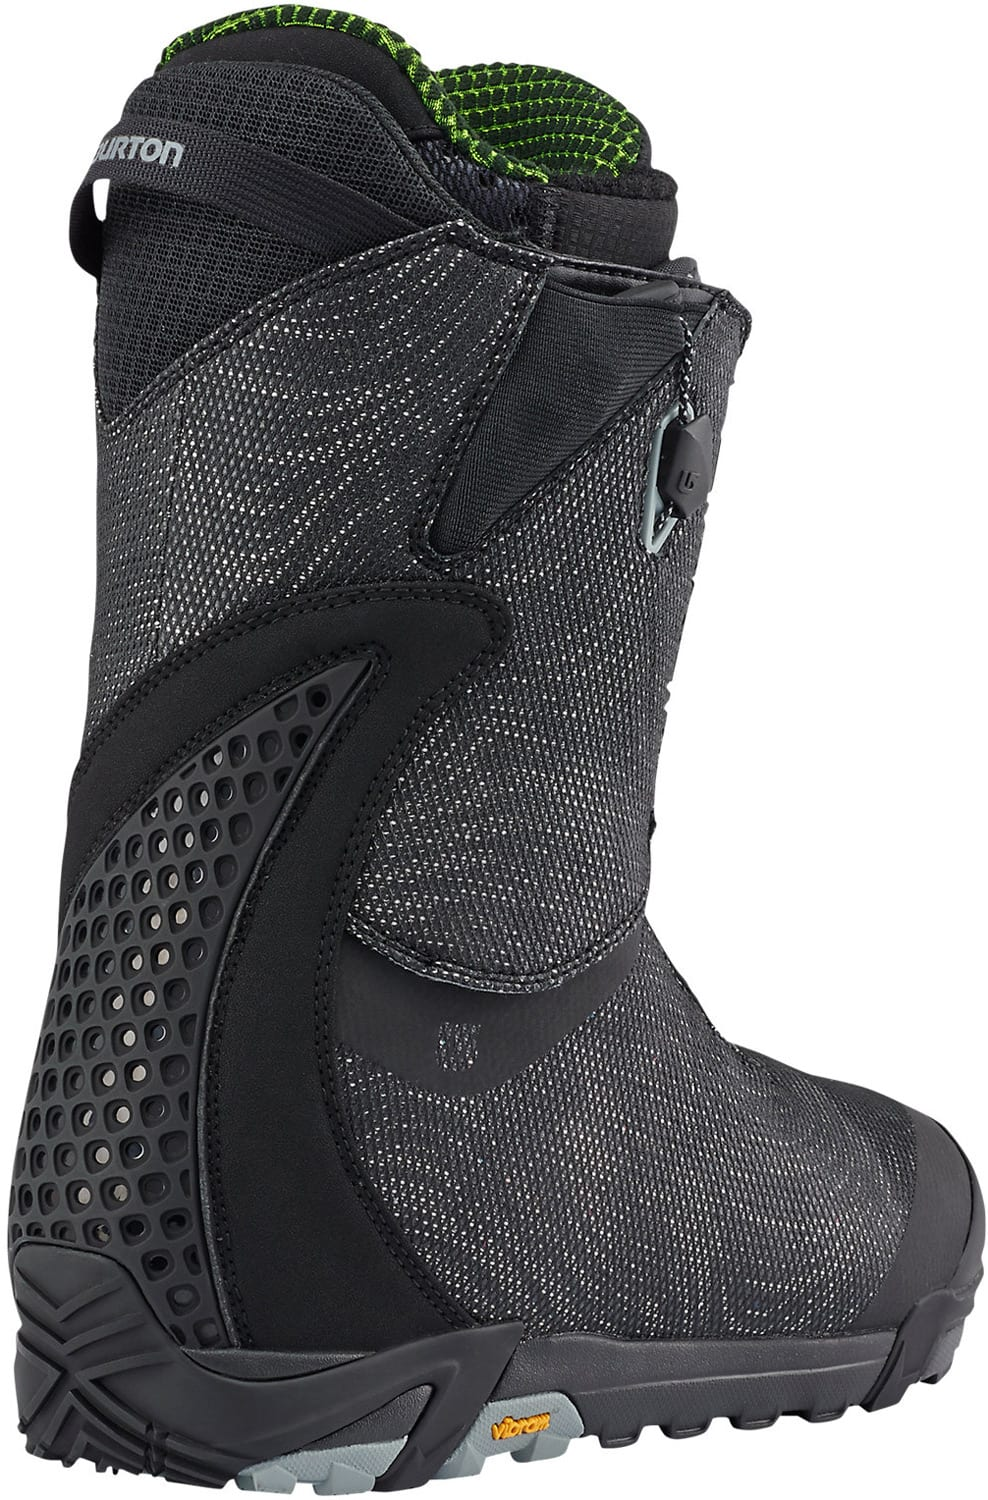 On sale burton slx snowboard boots up to 40 off for Housse burton snowboard